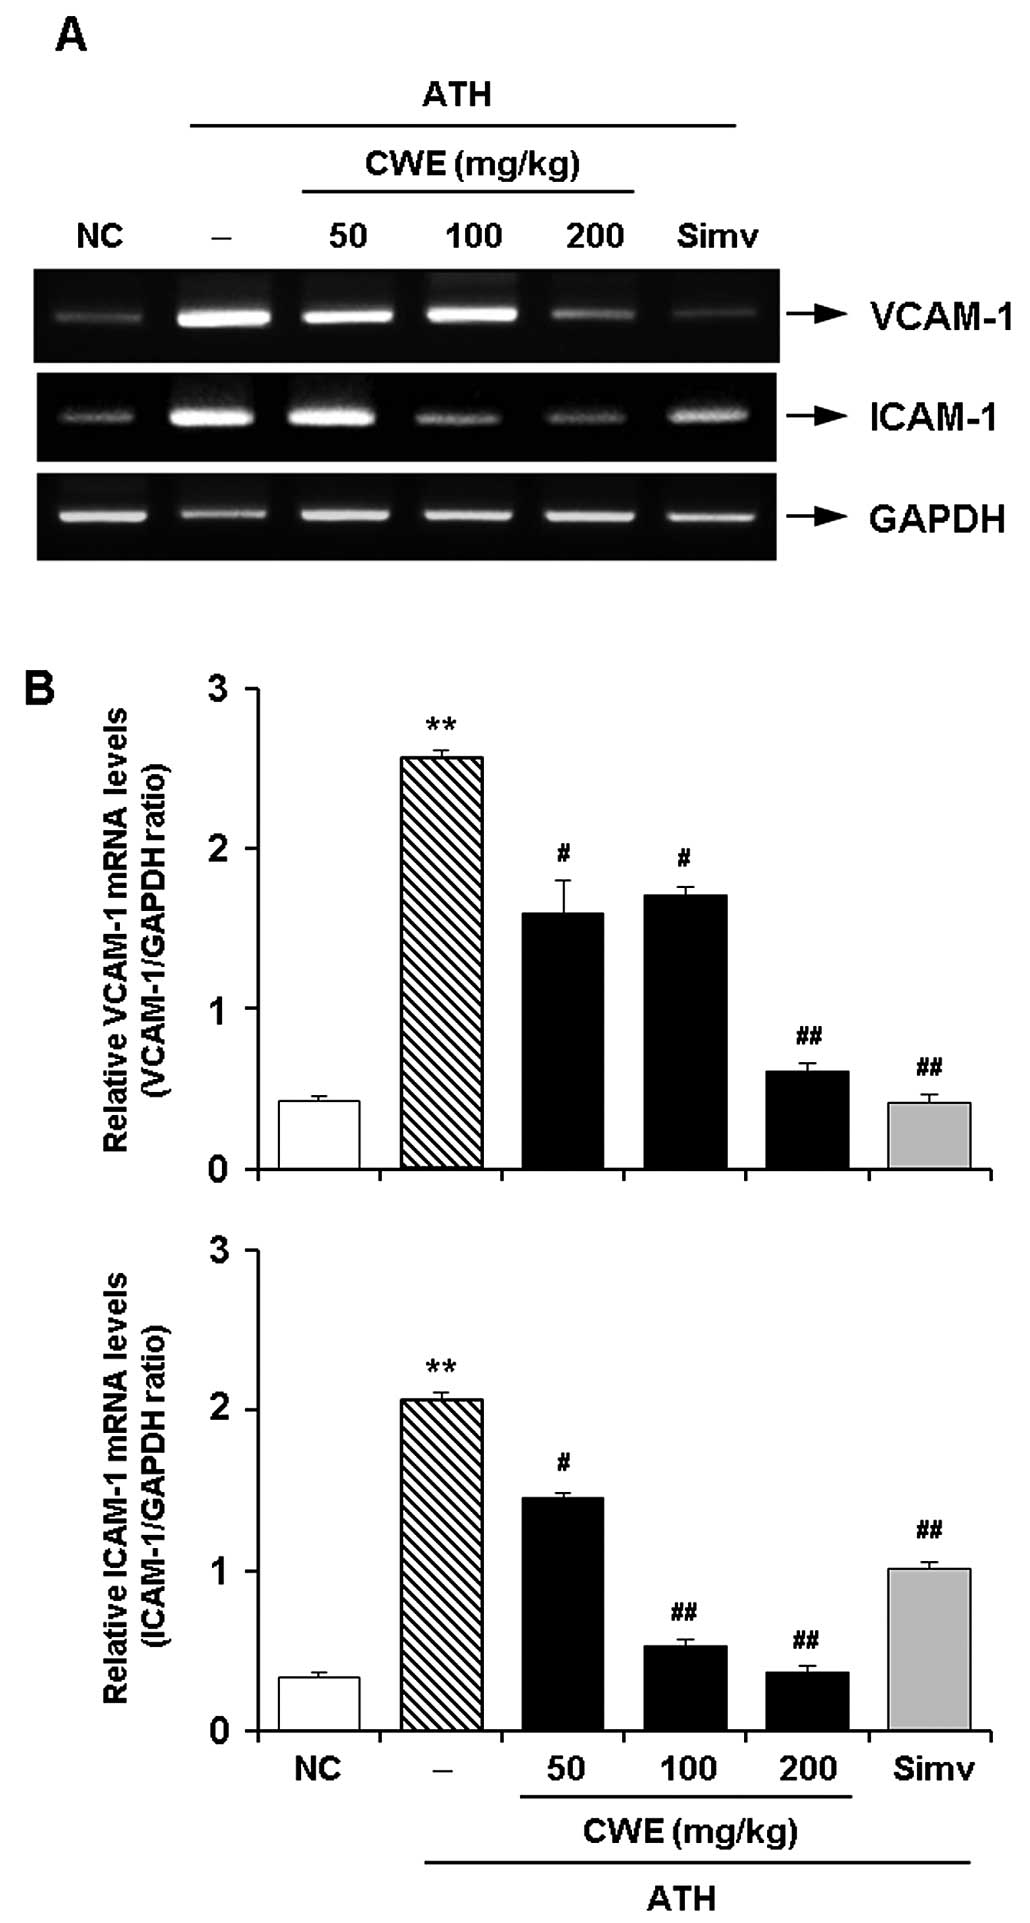 Effect of ethanol extract of Cynanchum wilfordii CWE on the aortic expression of cell adhesion molecules in mice fed an atherogenic ATH t for 12